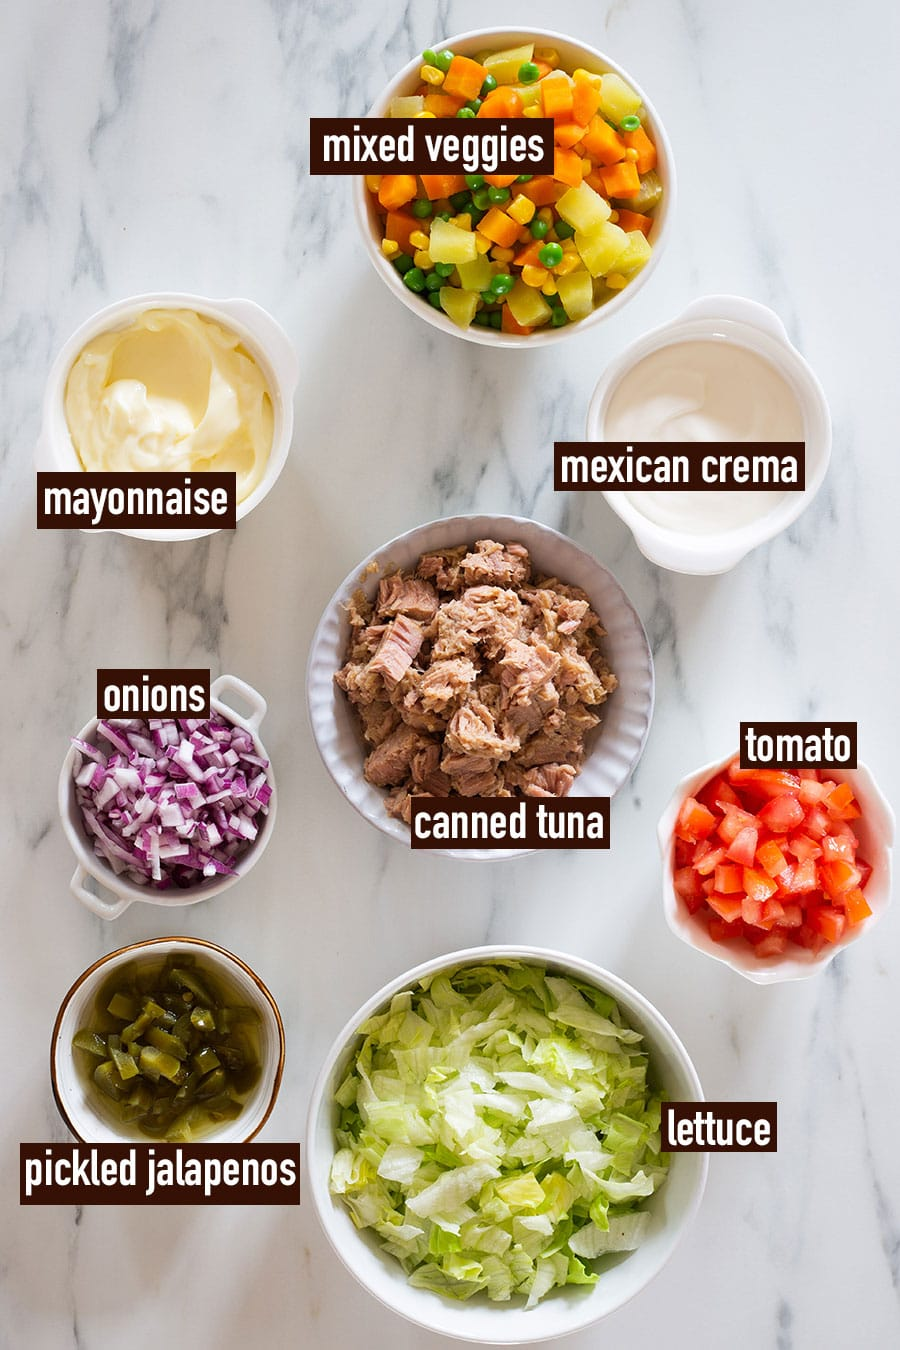 All ingredients ready on bowls and labeled with names placed on a marble surface.